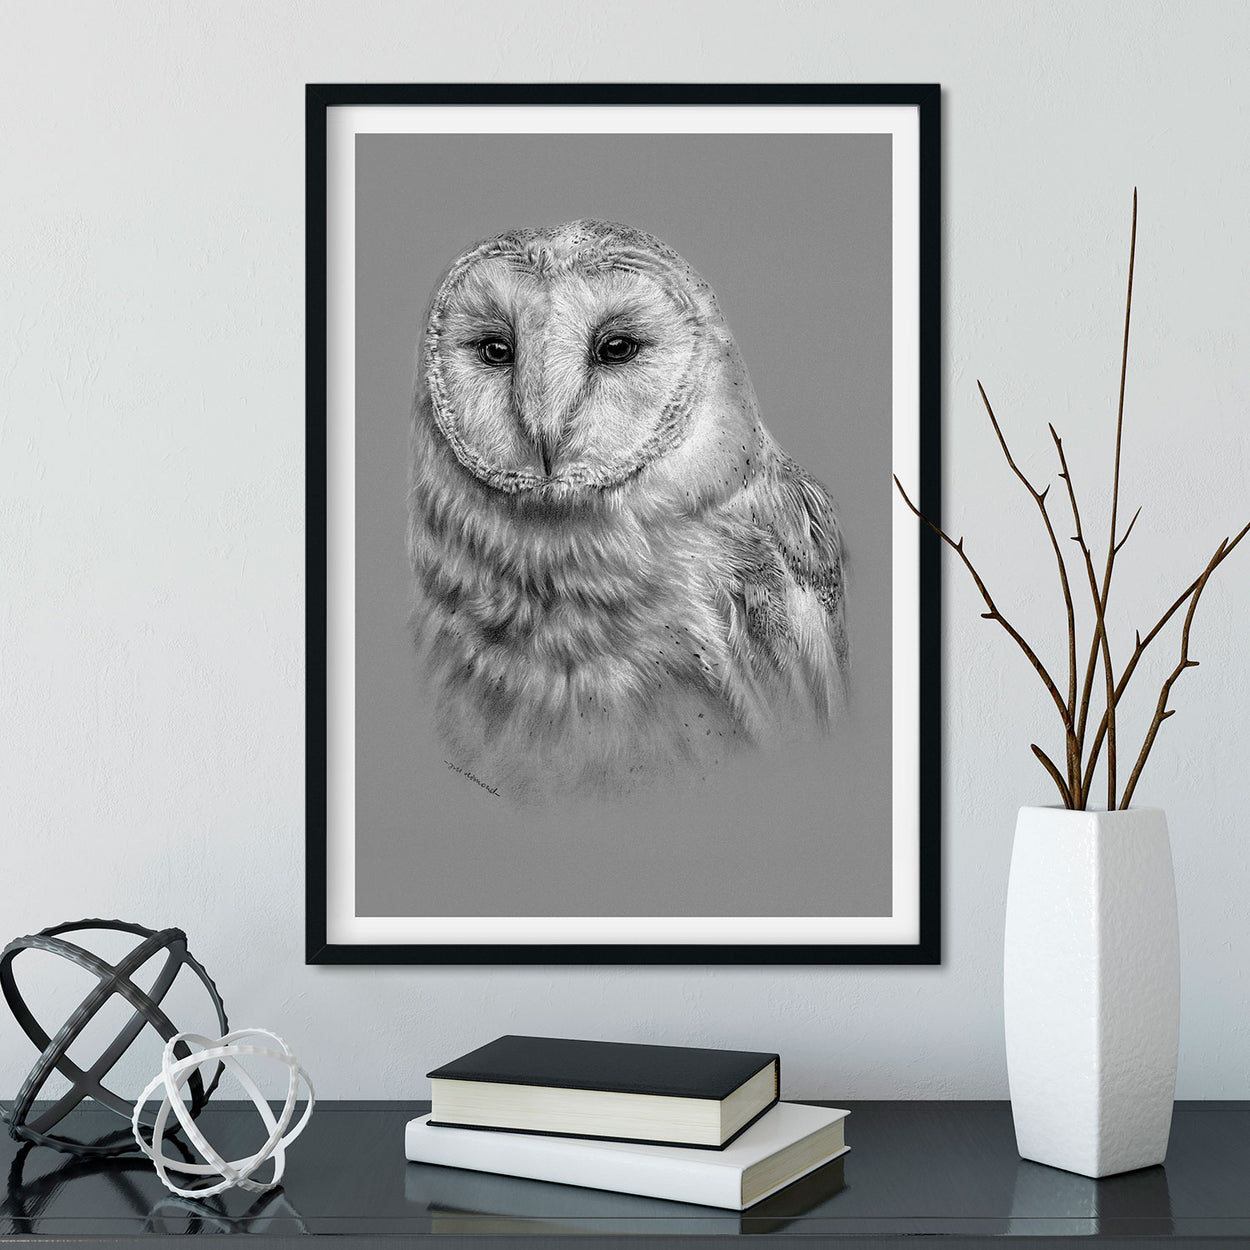 Barn Owl Wall Art Frame - The Thriving Wild